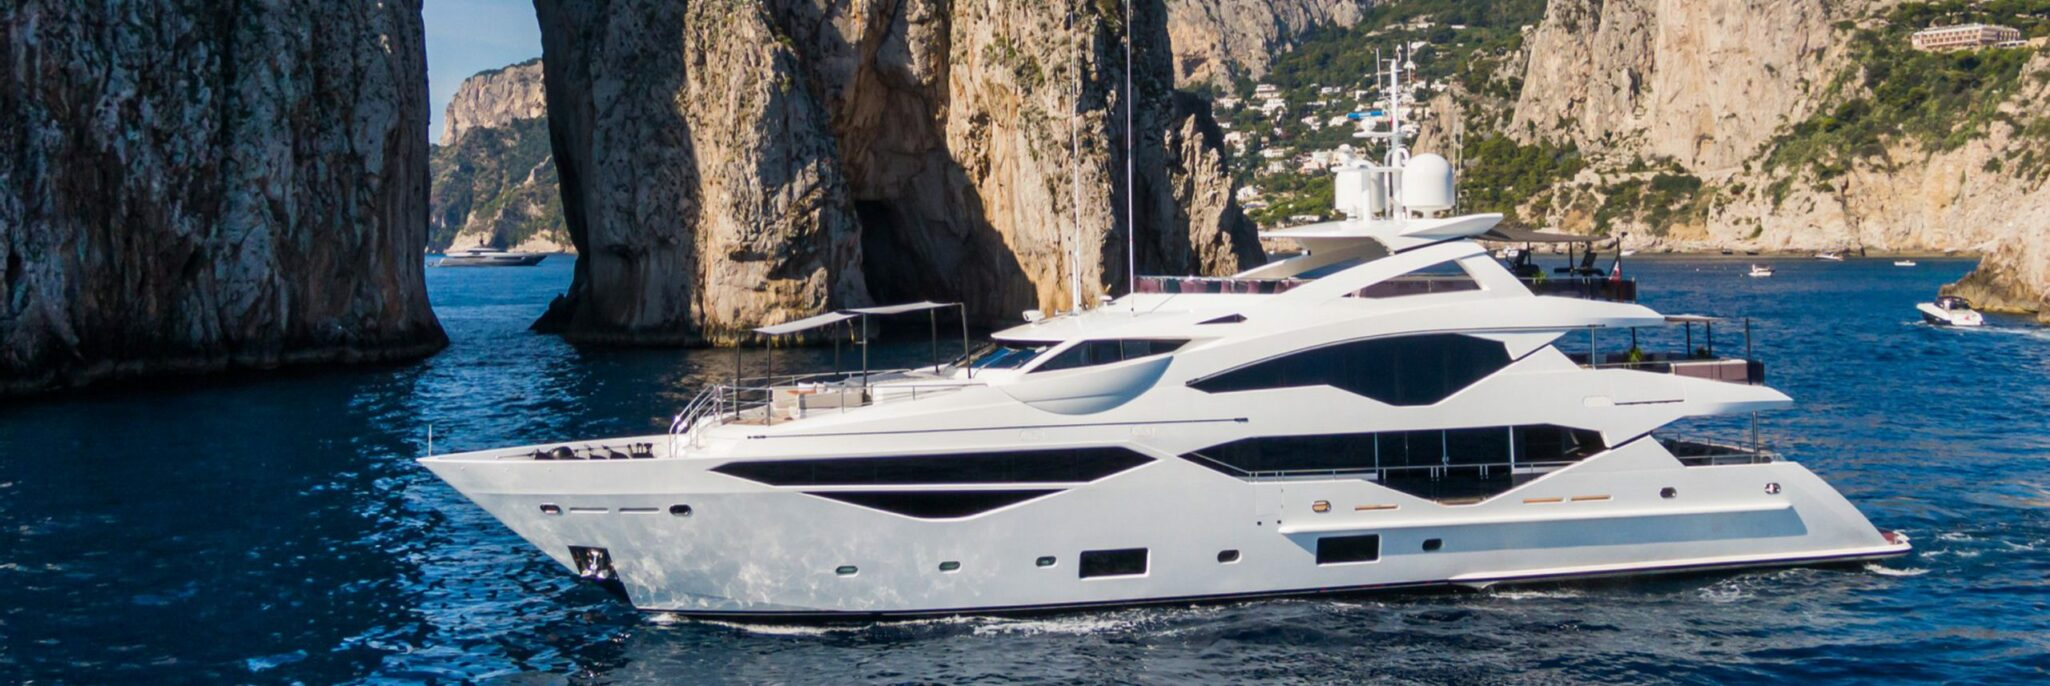 40m Sunseeker Yachts for Sale